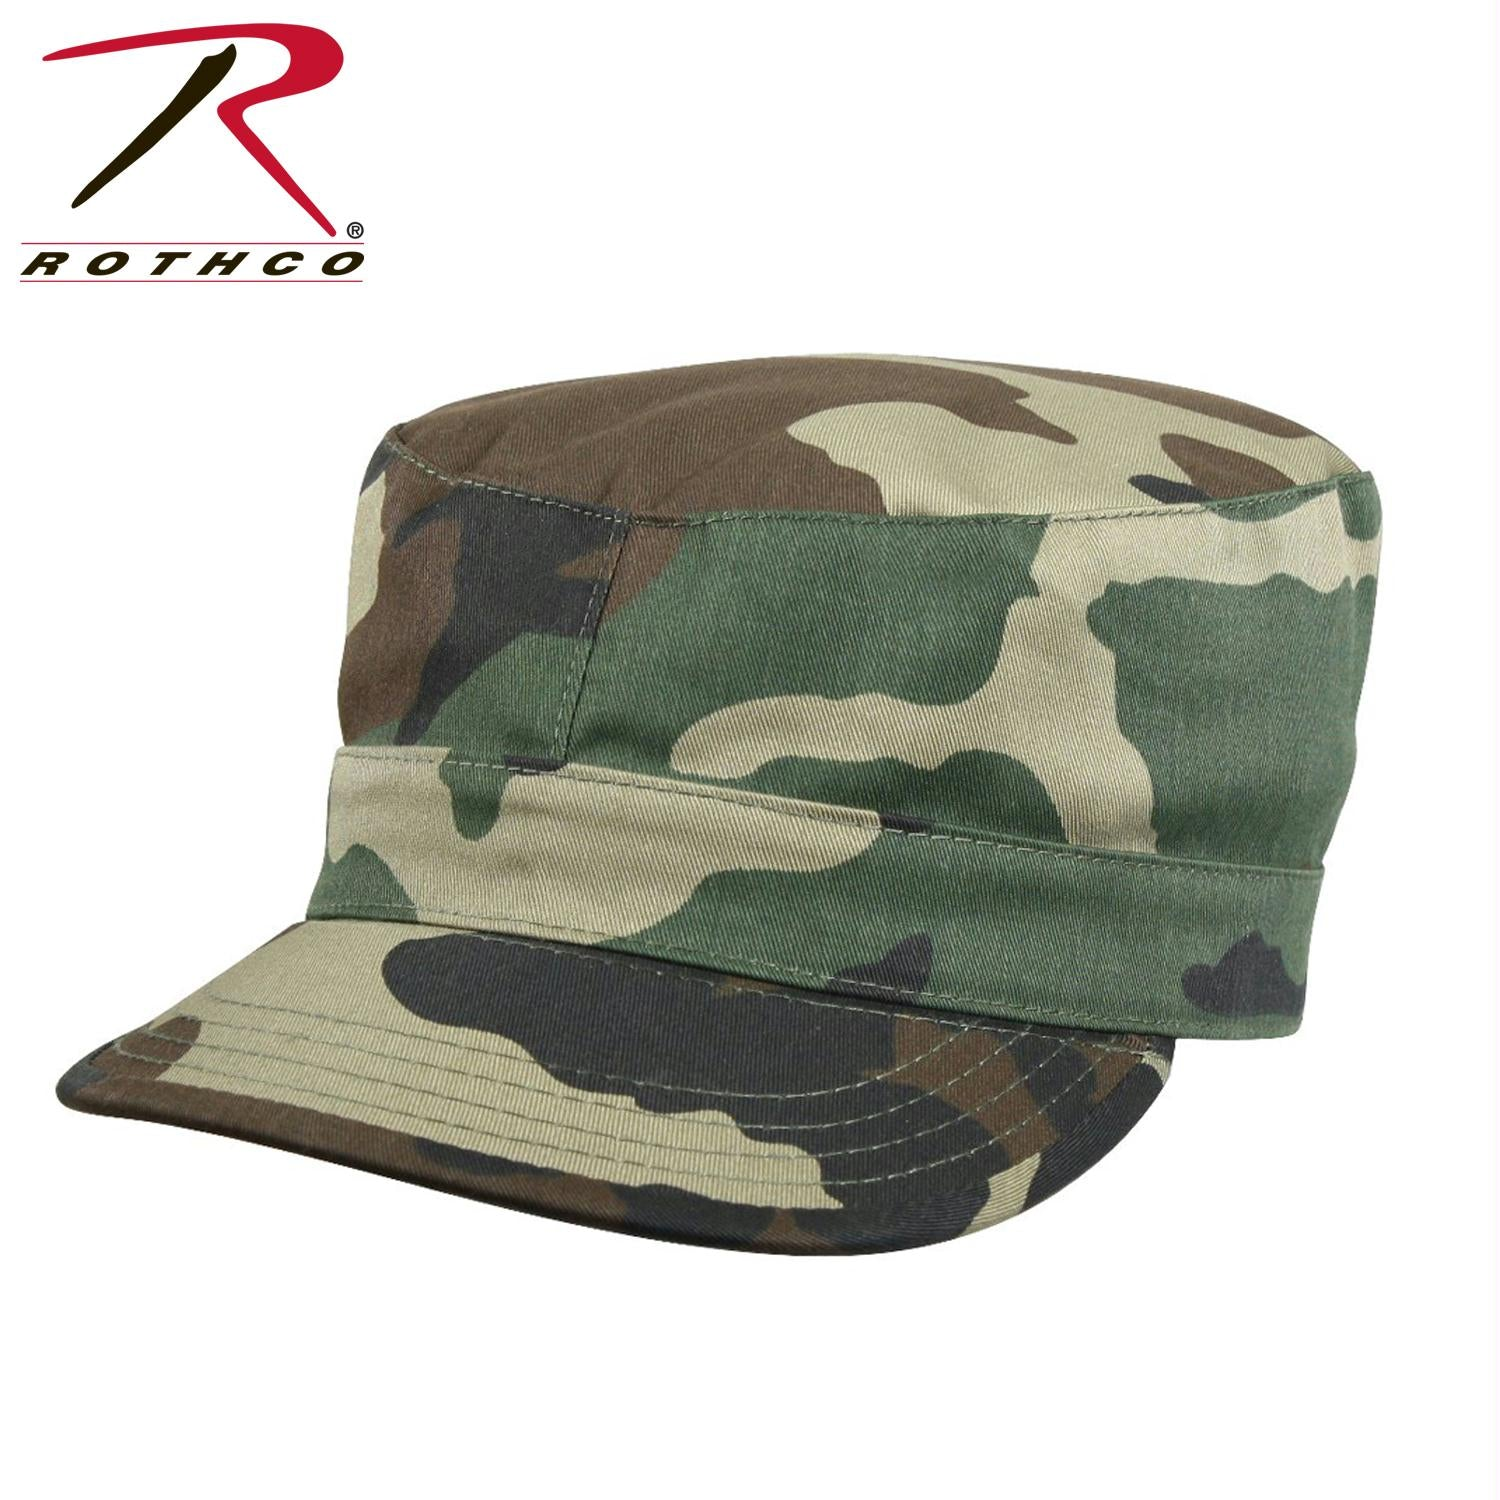 Rothco Camo Fatigue Caps - Woodland Camo / M